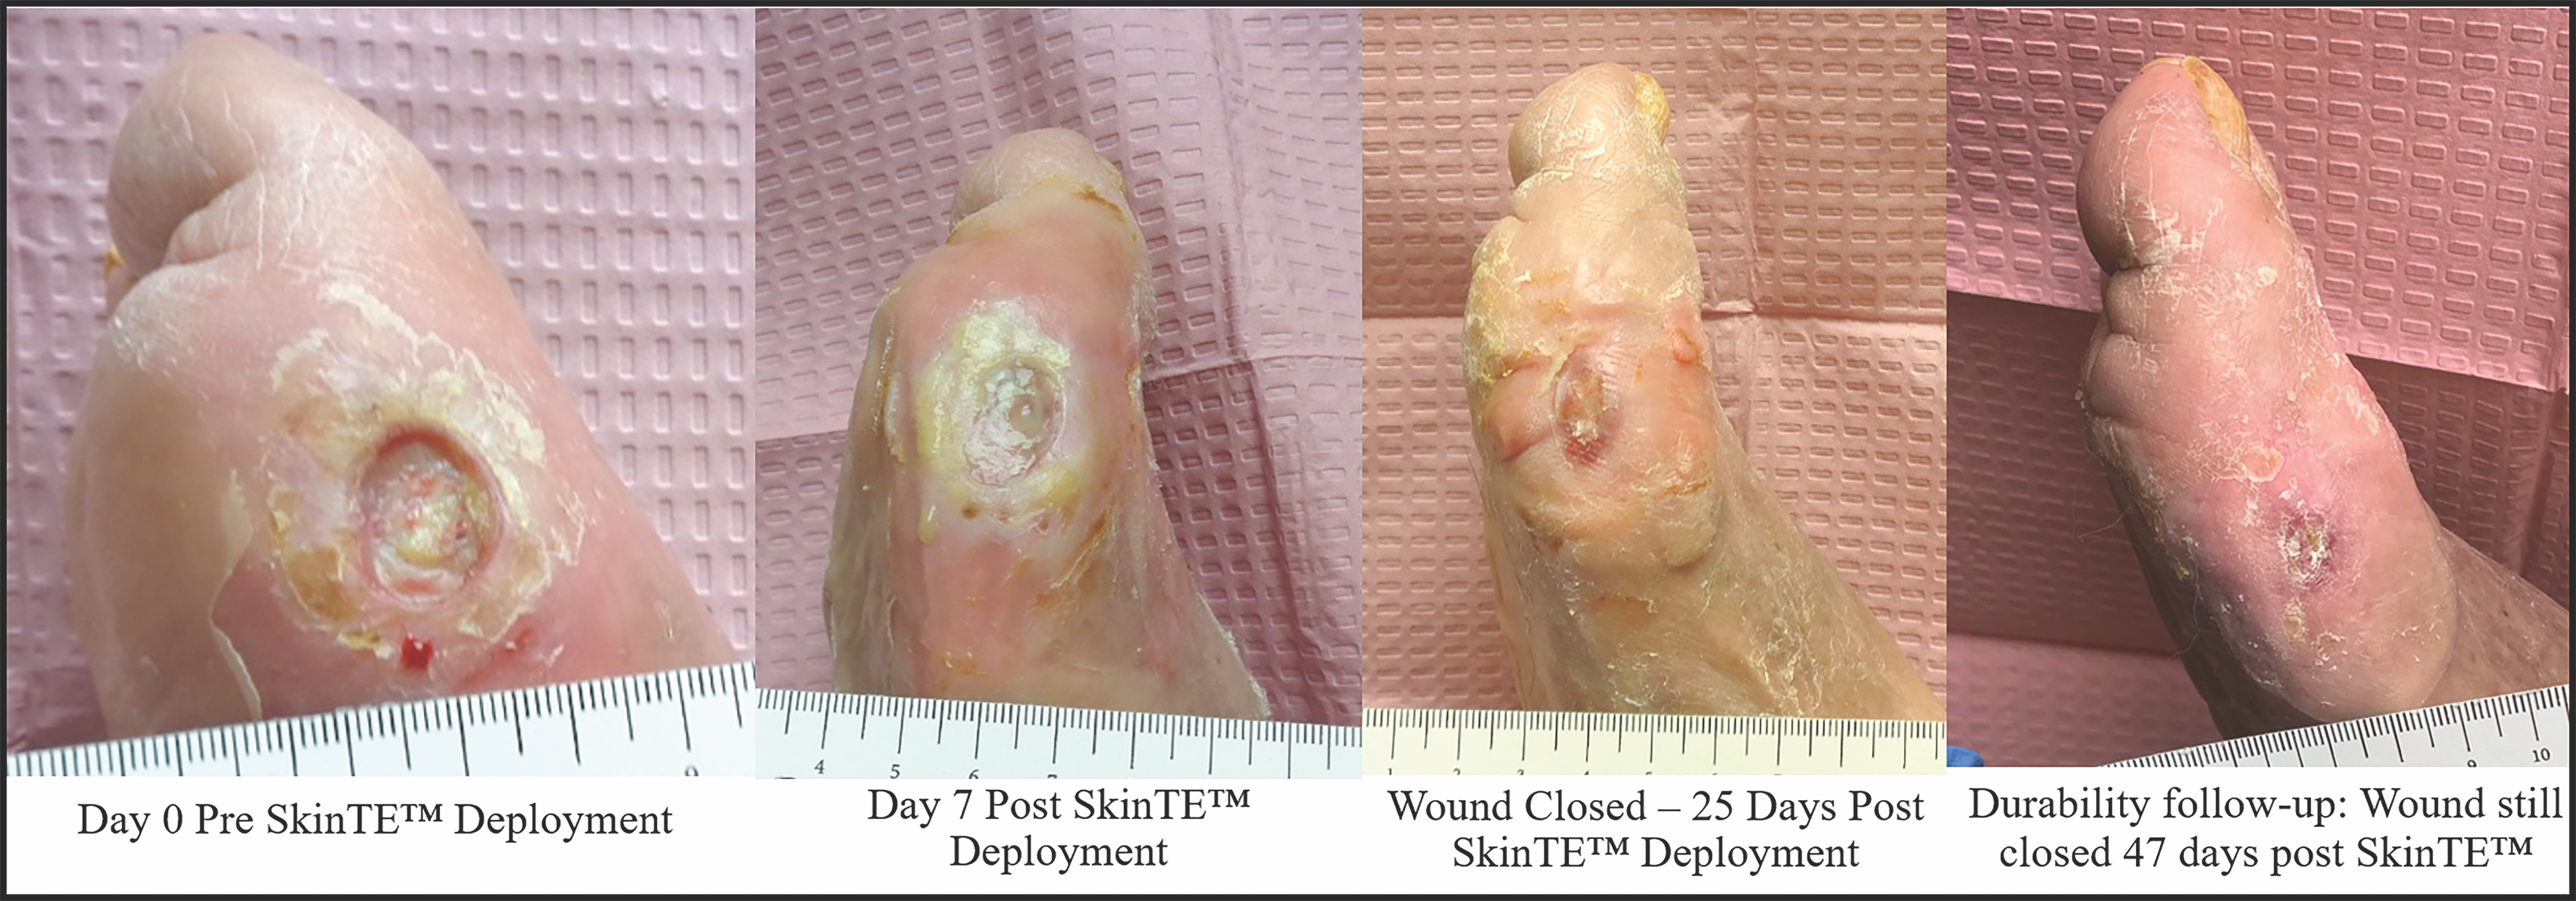 A patient presented with a 1.7 cm2  Wagner 2 DFU of the right medial foot over the first metatarsal involving joint capsule (photo 1). Photo 2 shows the wound seven days following the use of SkinTE therapy. The healing progression over 25 days demonstrated durable reepithelialization and full closure of the chronic wound (photo 3). Photo 4 shows the wound still closed 47 days following SkinTE application.